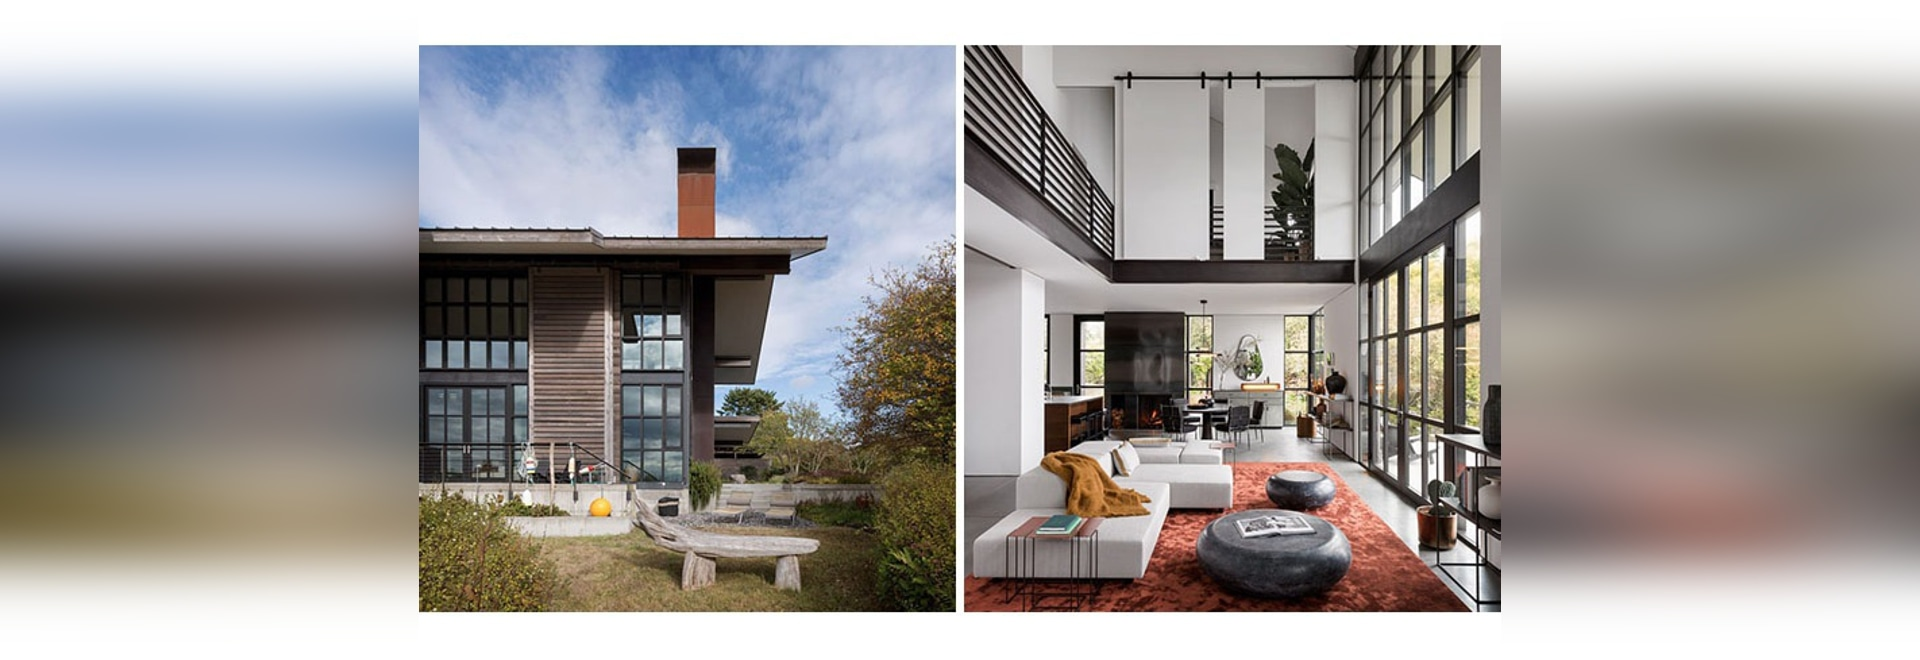 High Ceilings And Industrial Materials Are Prominent Design Elements In This New House